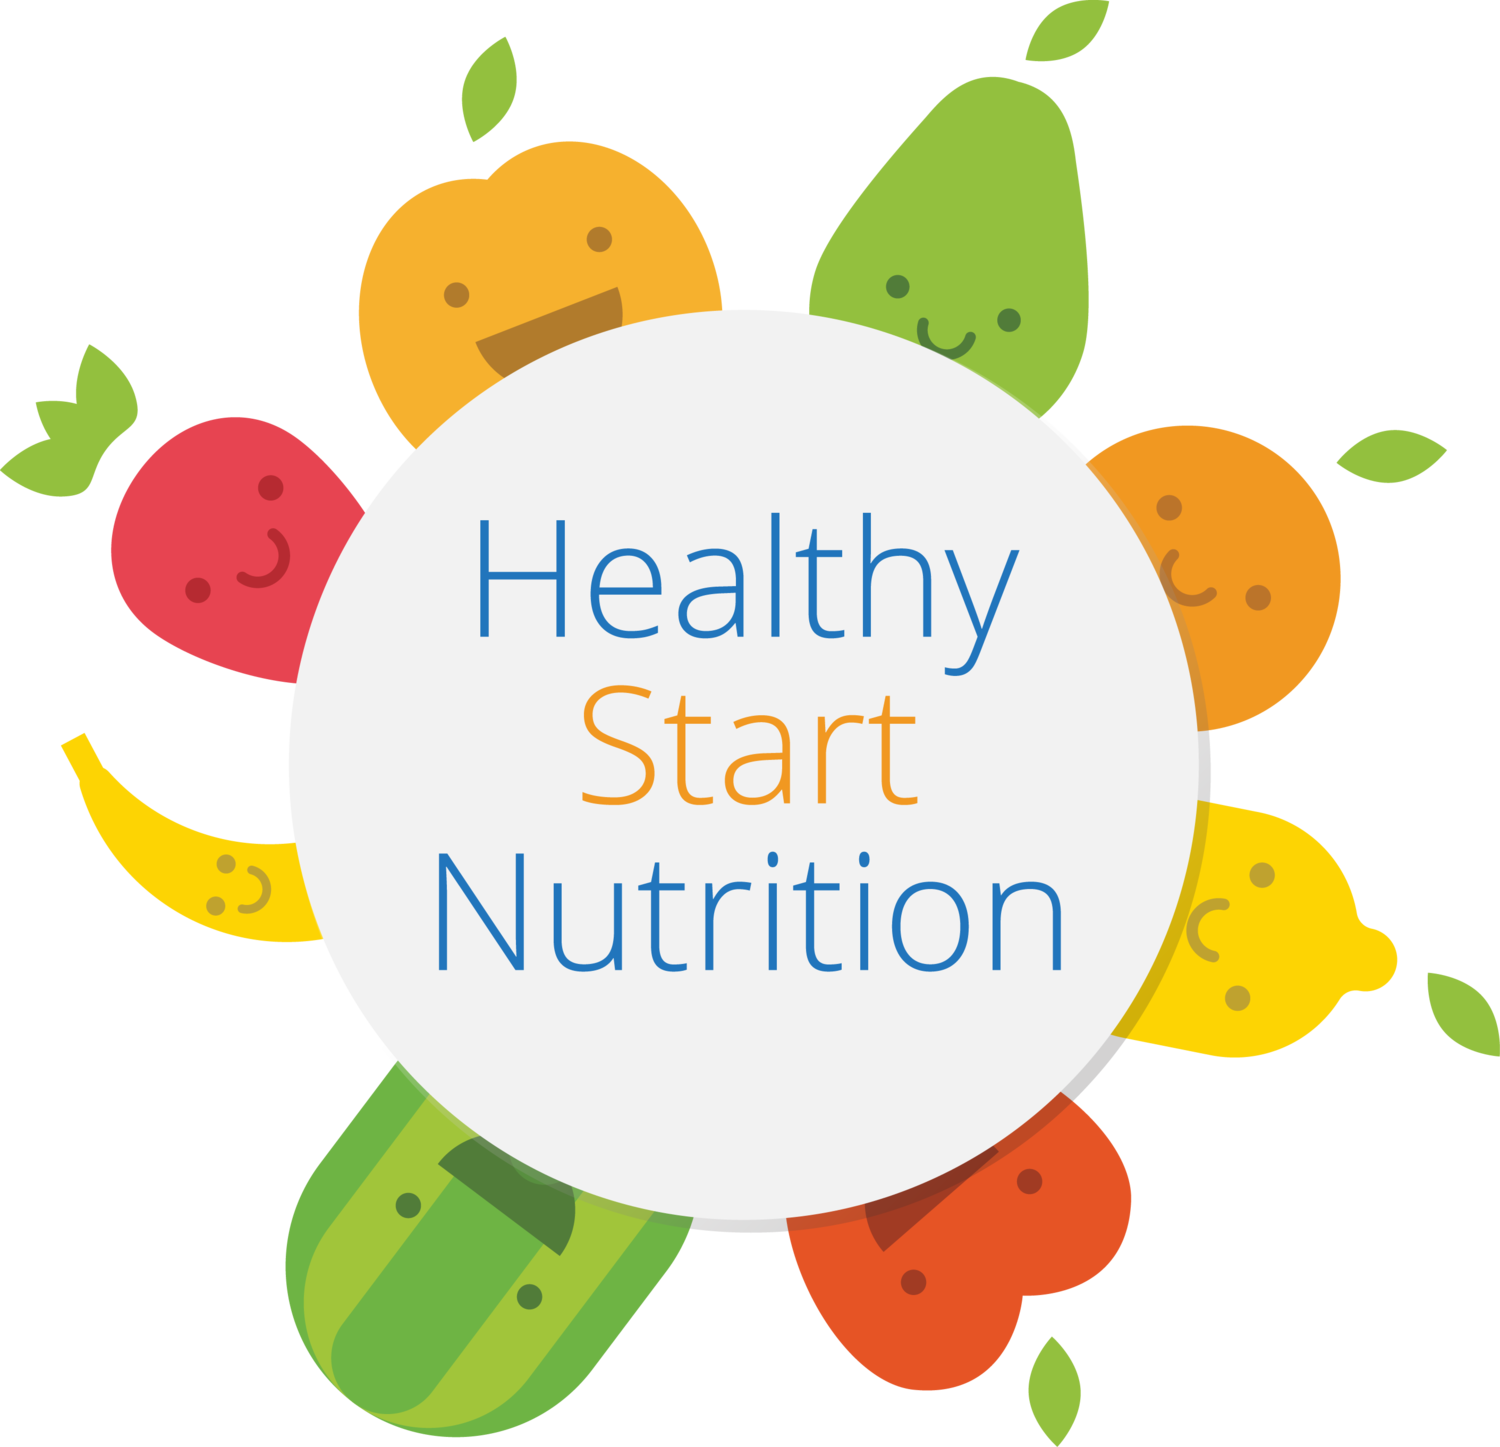 Nutrition healthy lifestyle